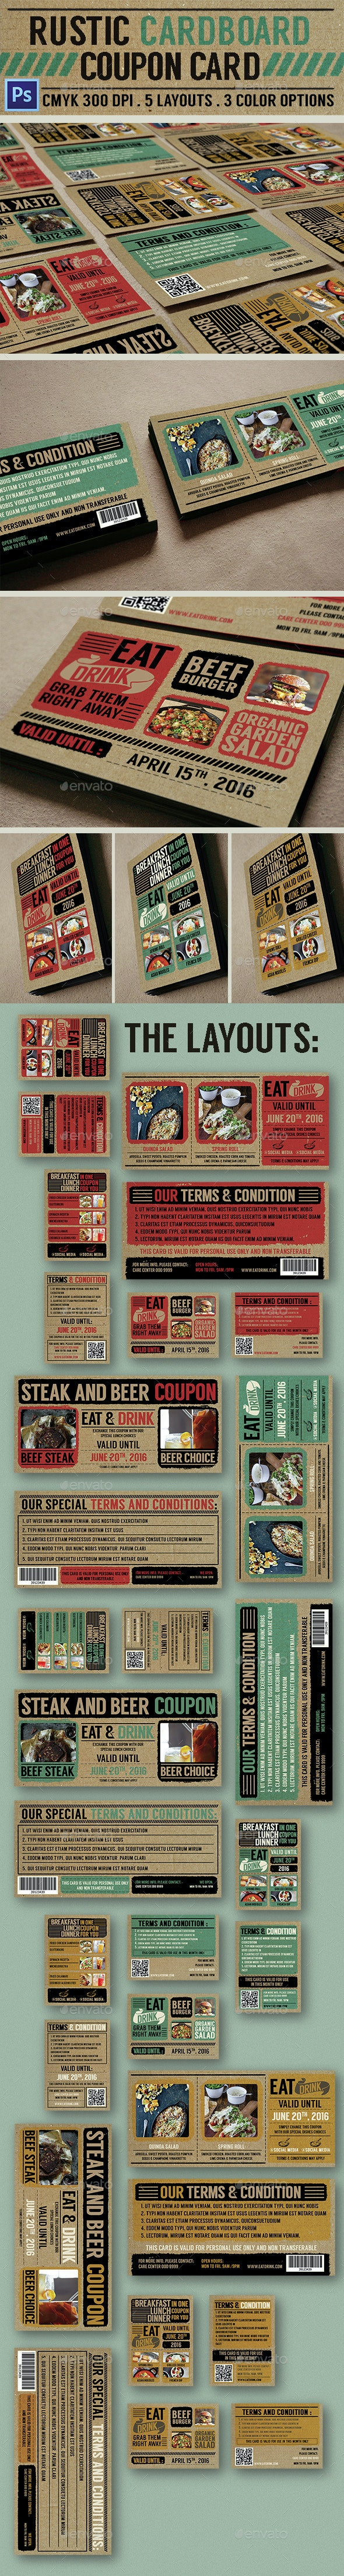 Rustic Cardboard Coupon Card - Loyalty Cards Cards & Invites